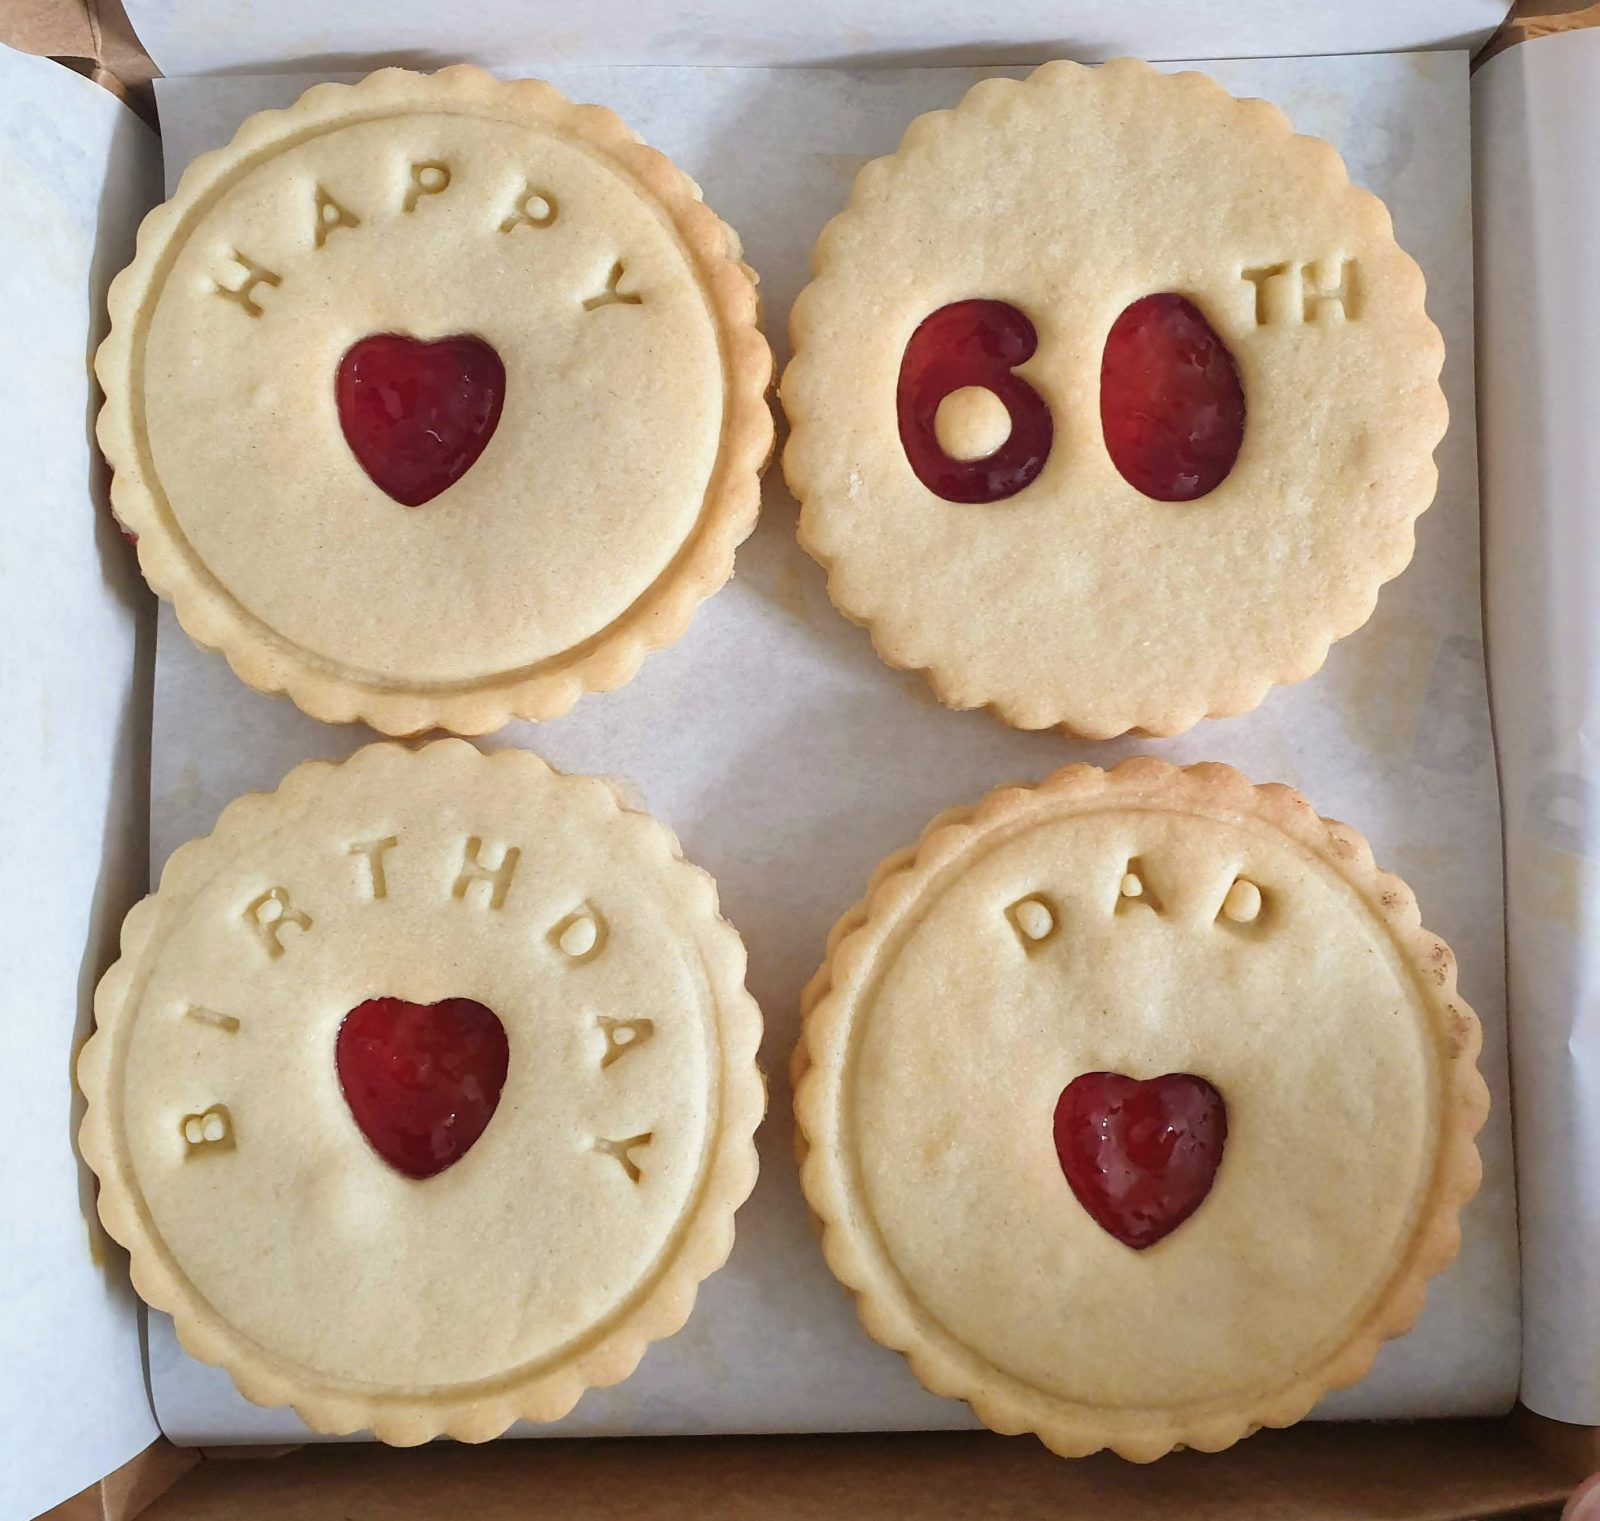 60th birthday biscuits